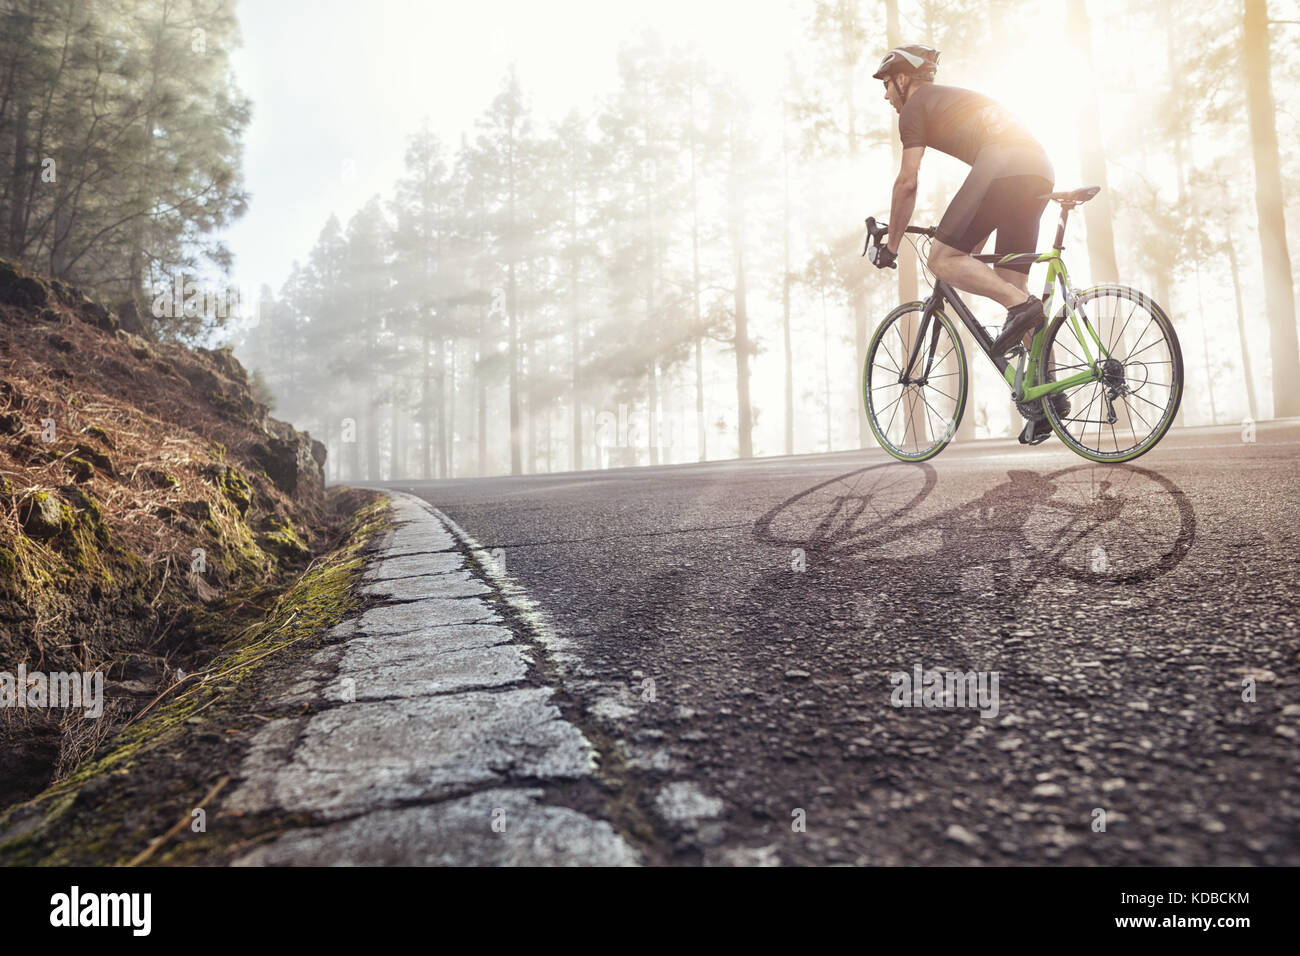 Cyclist on road in a foggy forest - Stock Image